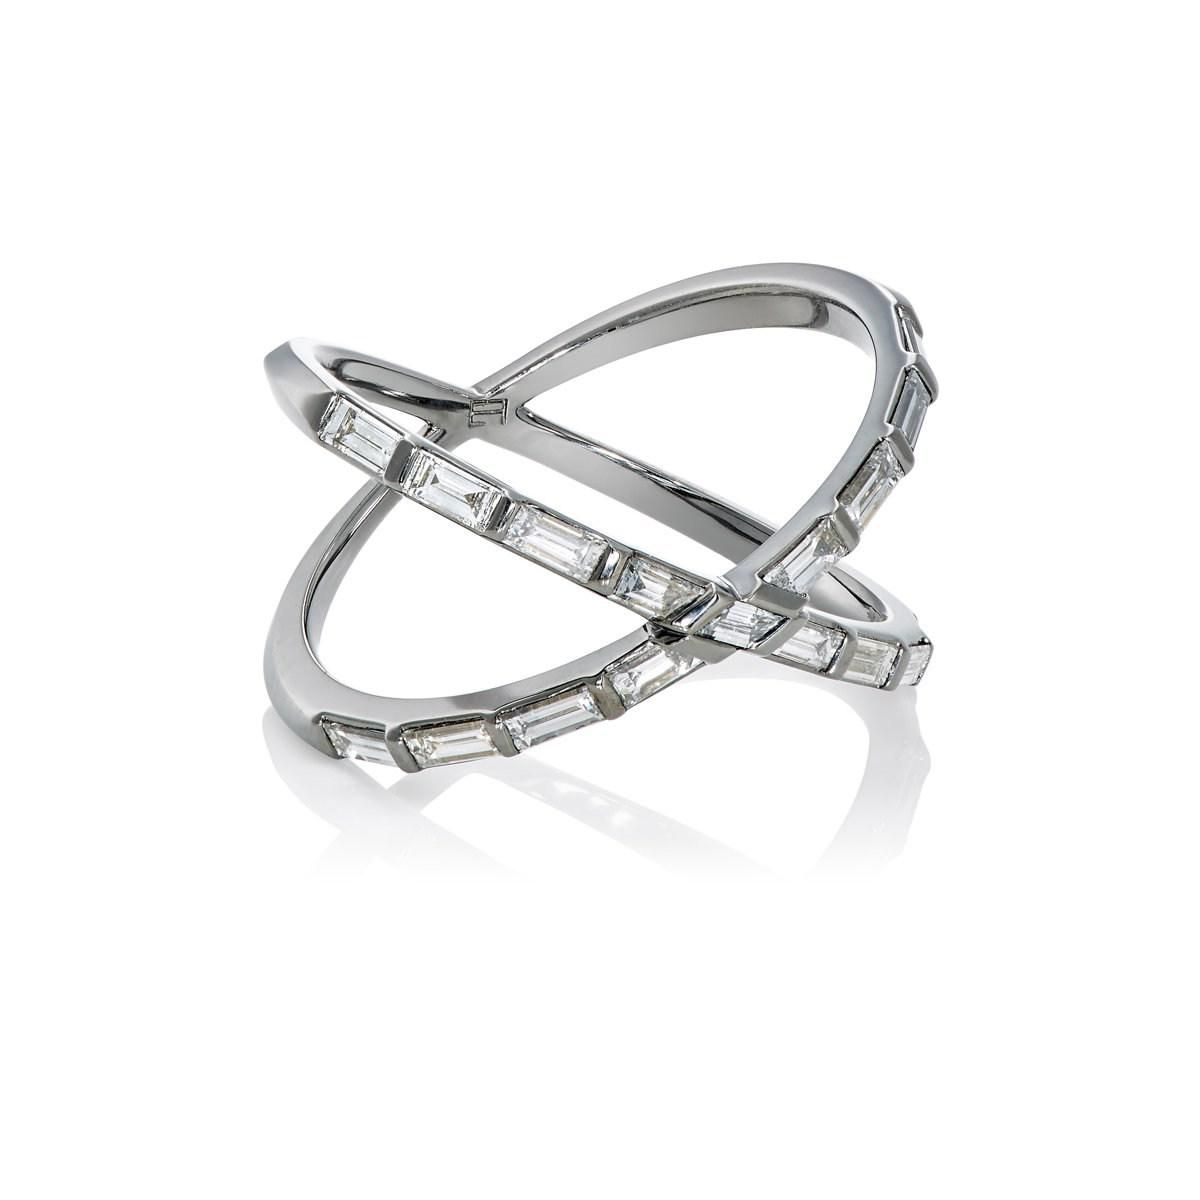 Eva Fehren Tetra Shorty Ring - Metallic LOvlygW7a